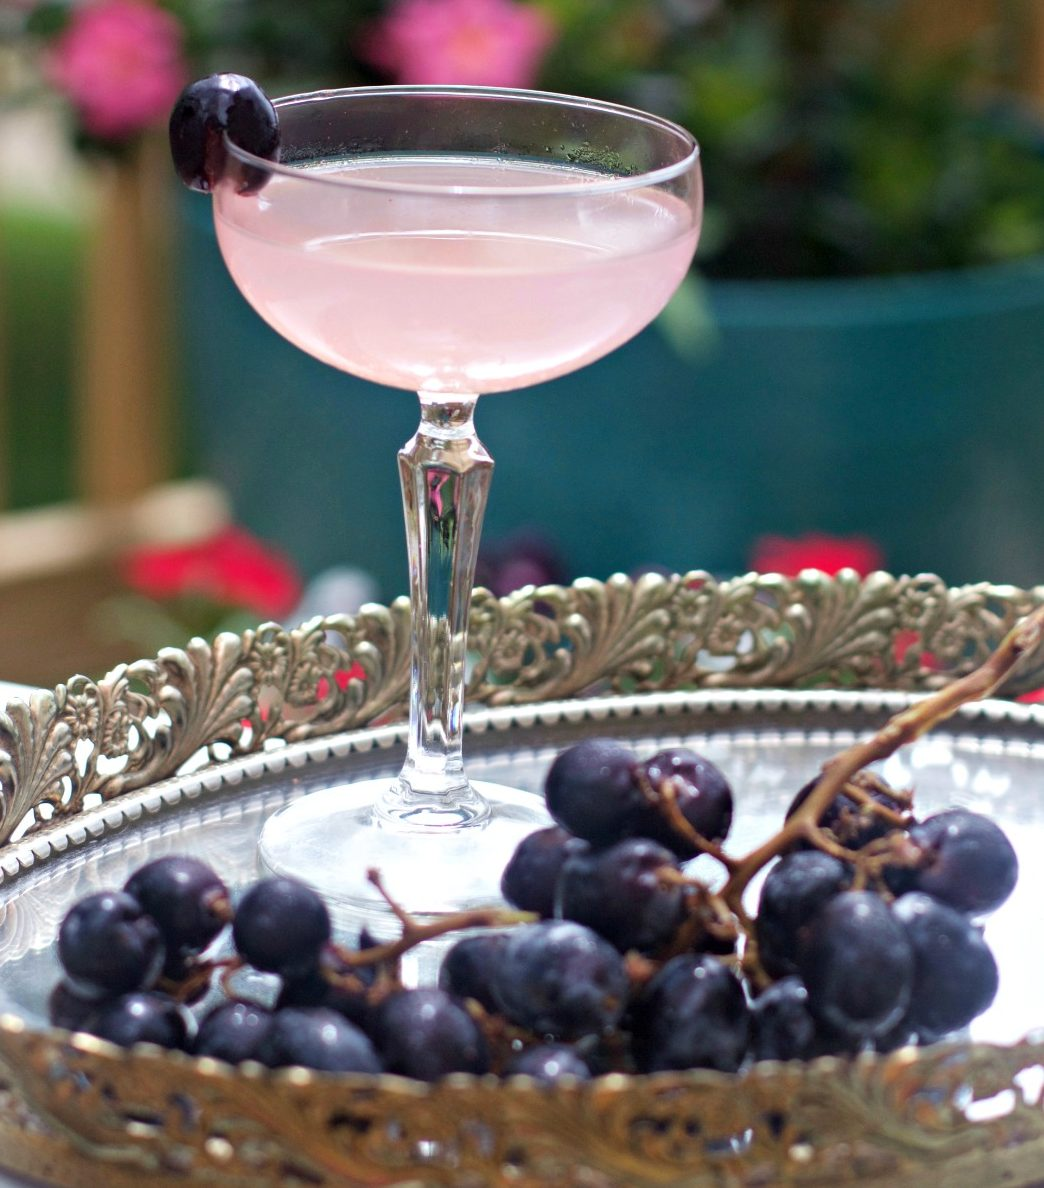 Summer Cocktails - Gin Elderberry Cocktail from Spinach Tiger